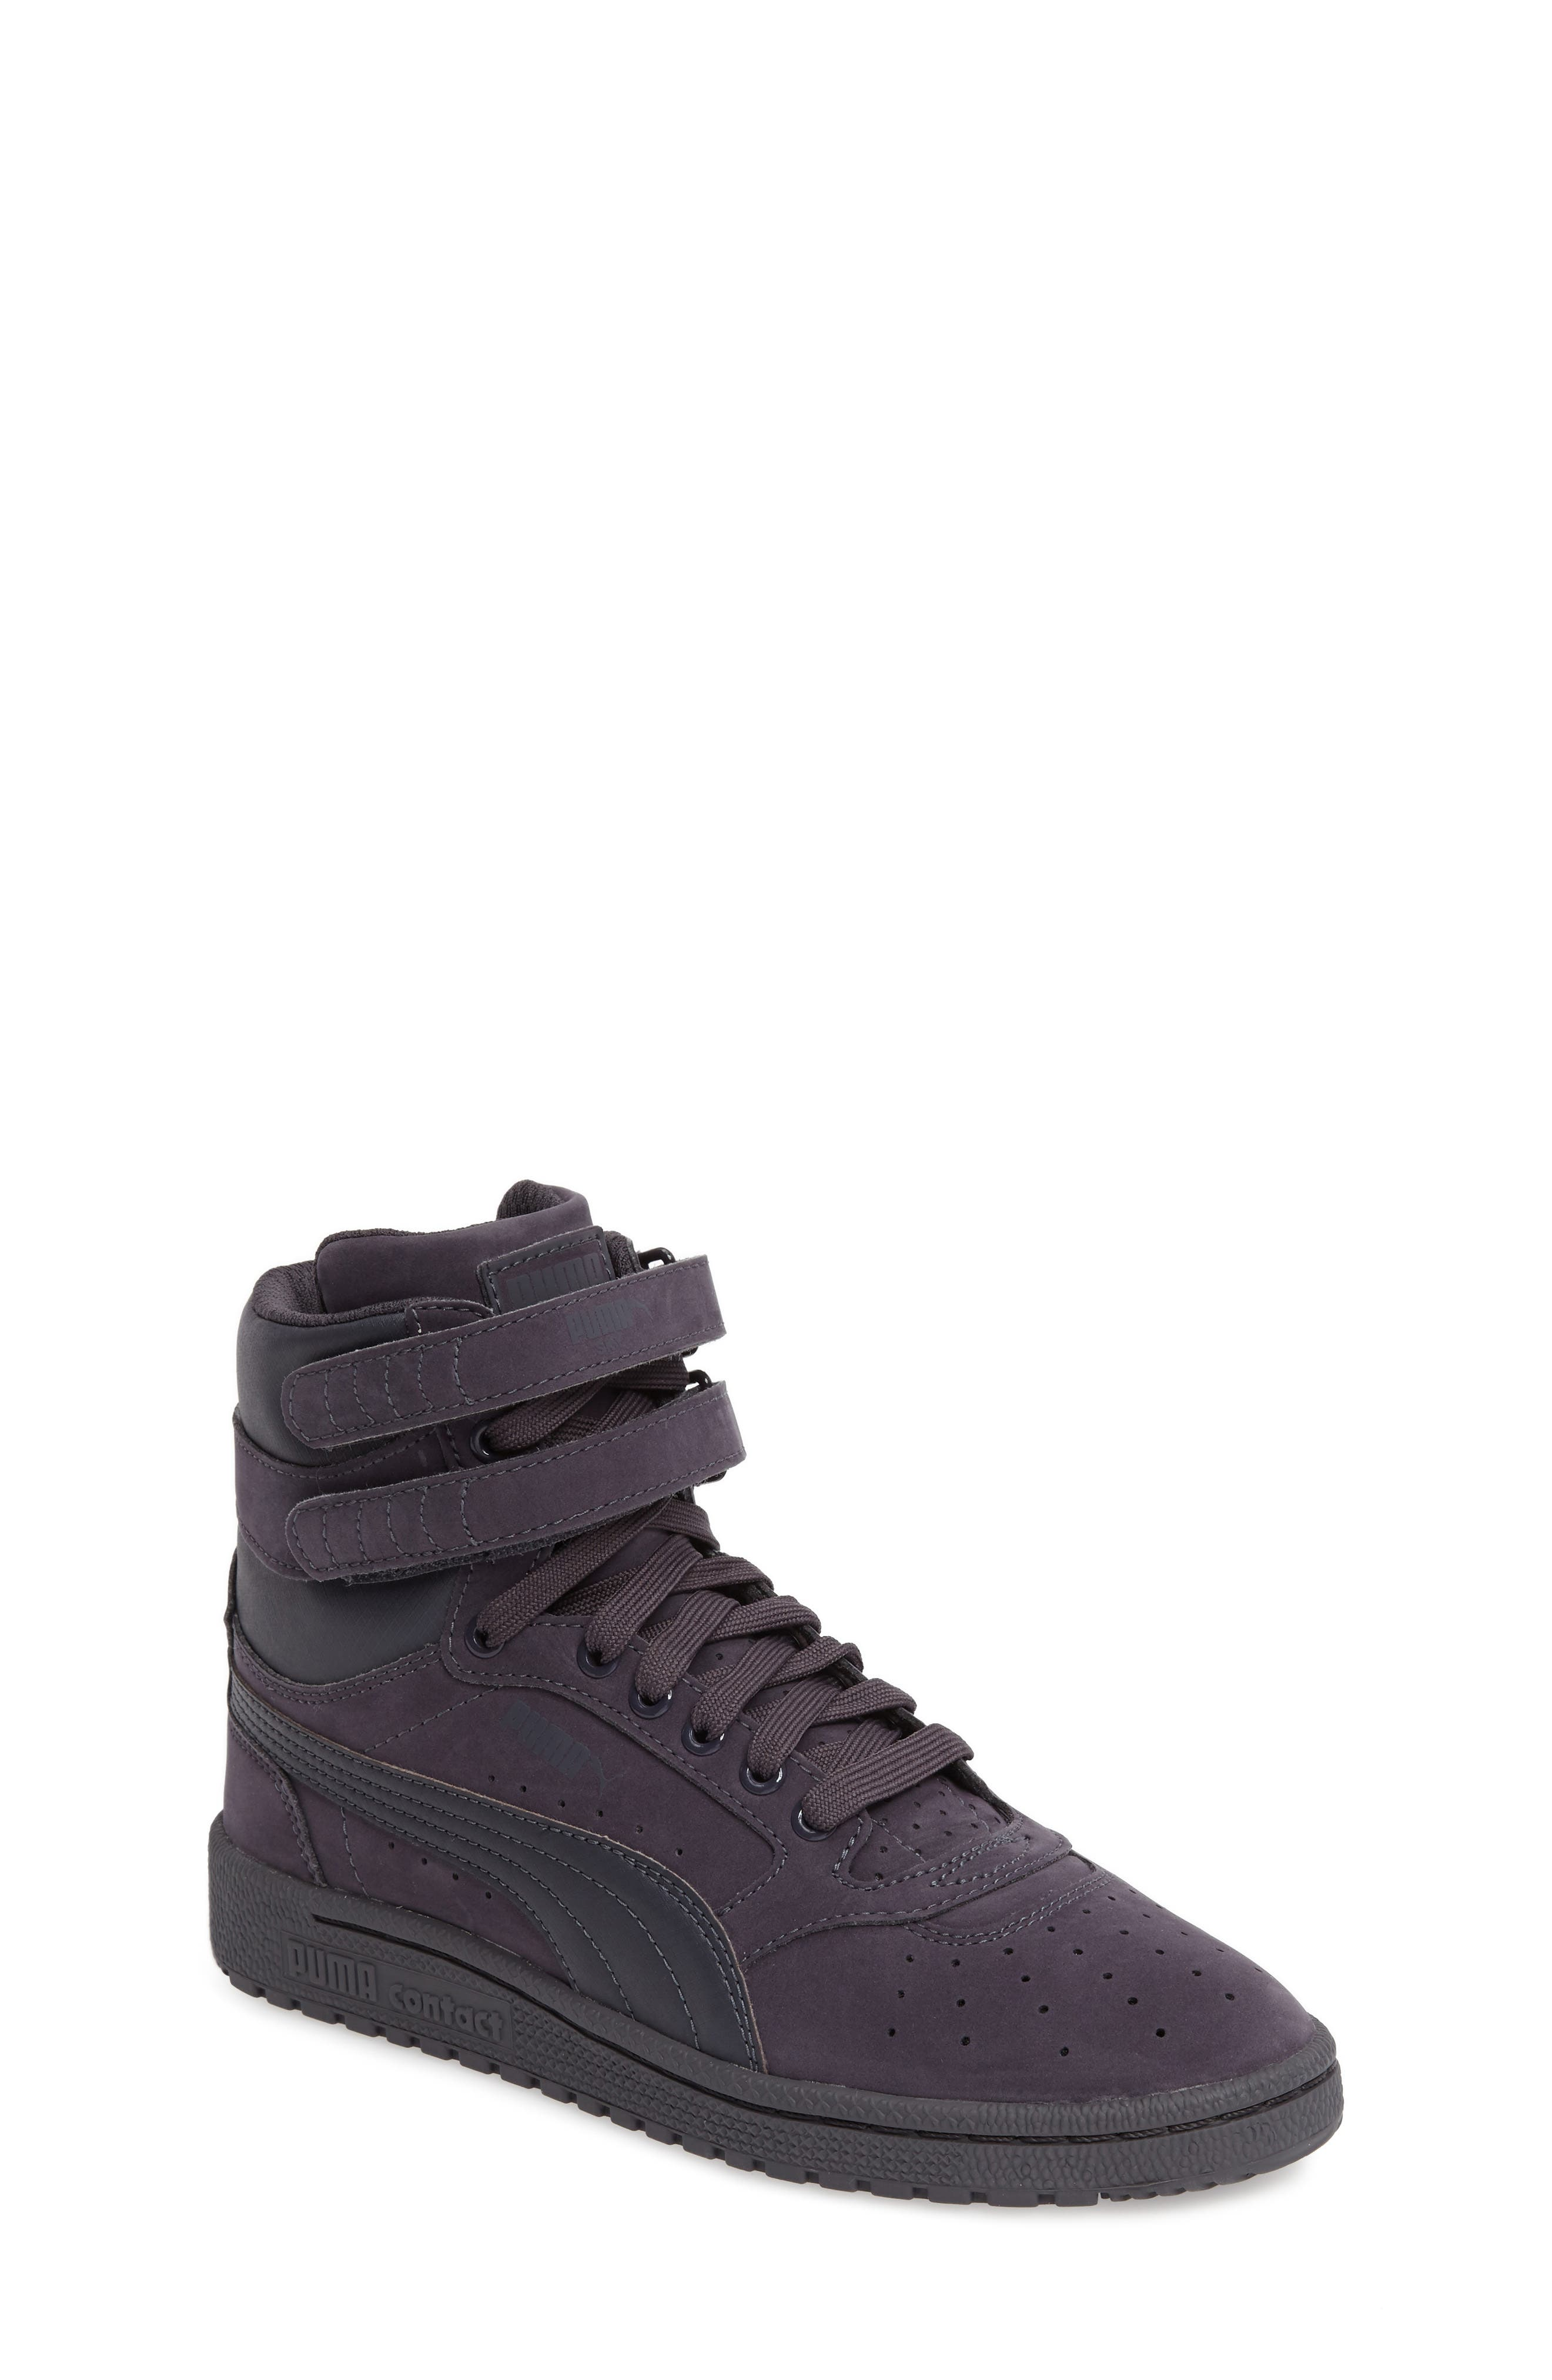 Ski II High Top Sneaker,                             Main thumbnail 1, color,                             020